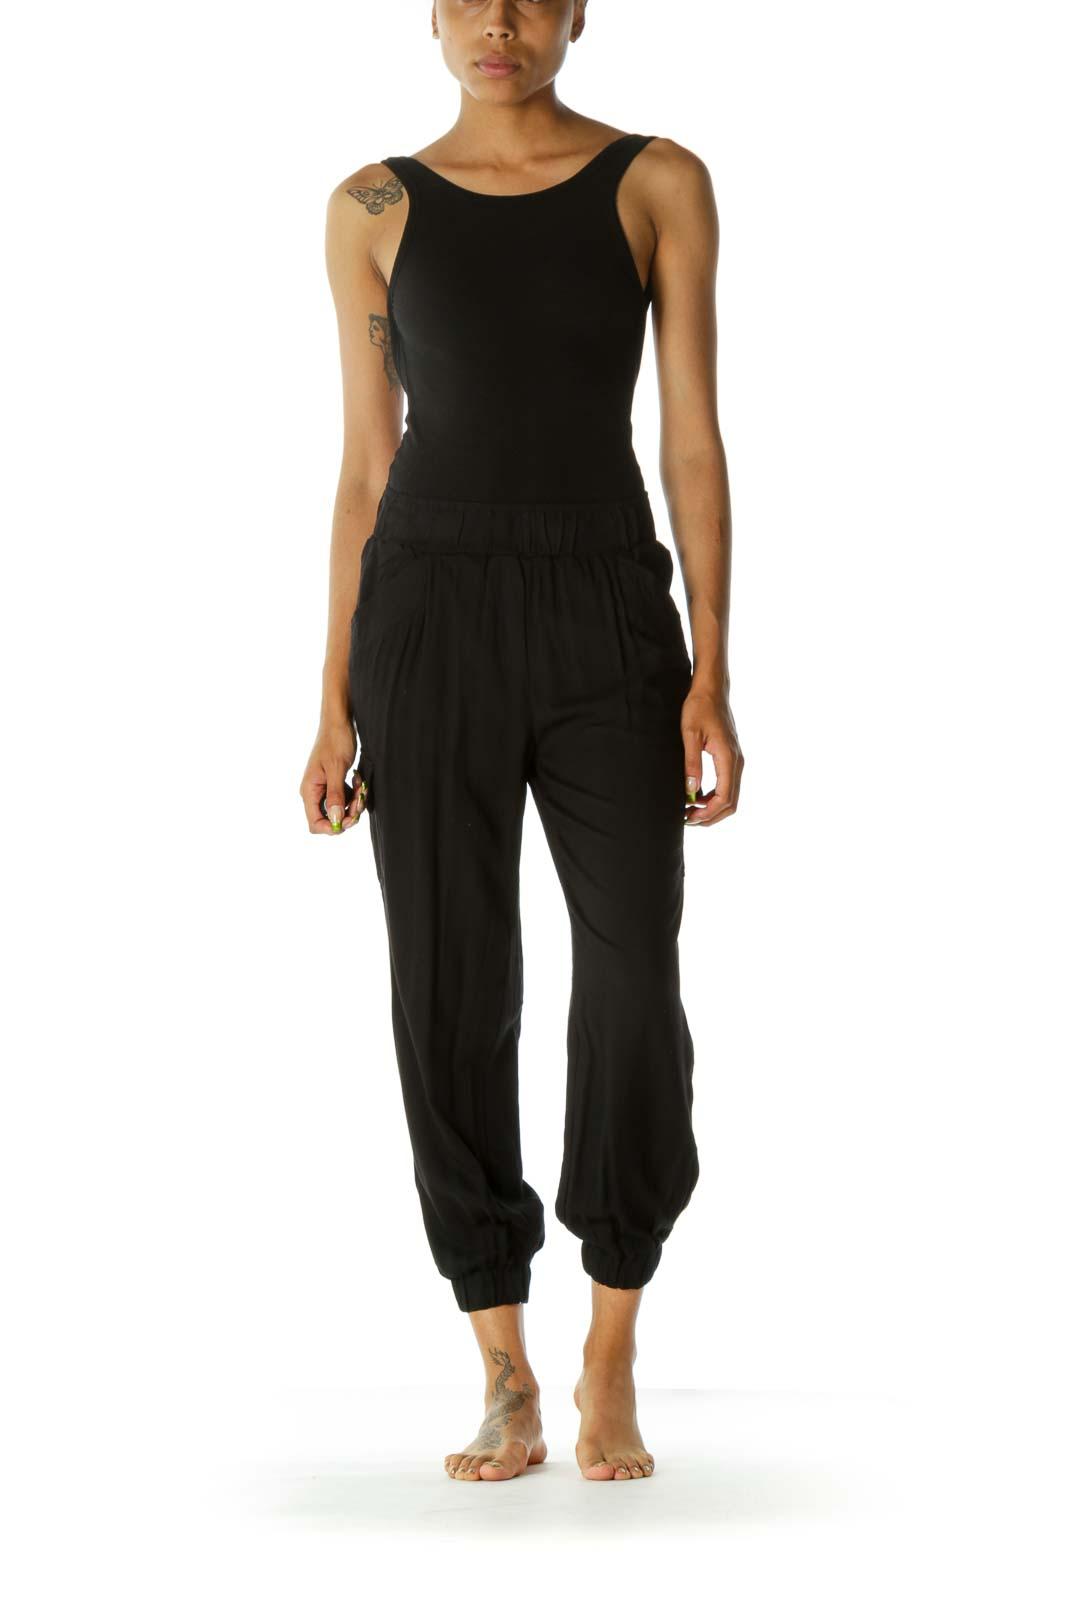 Black Pocketed Loose Elastic Ankles and Waistband Pants